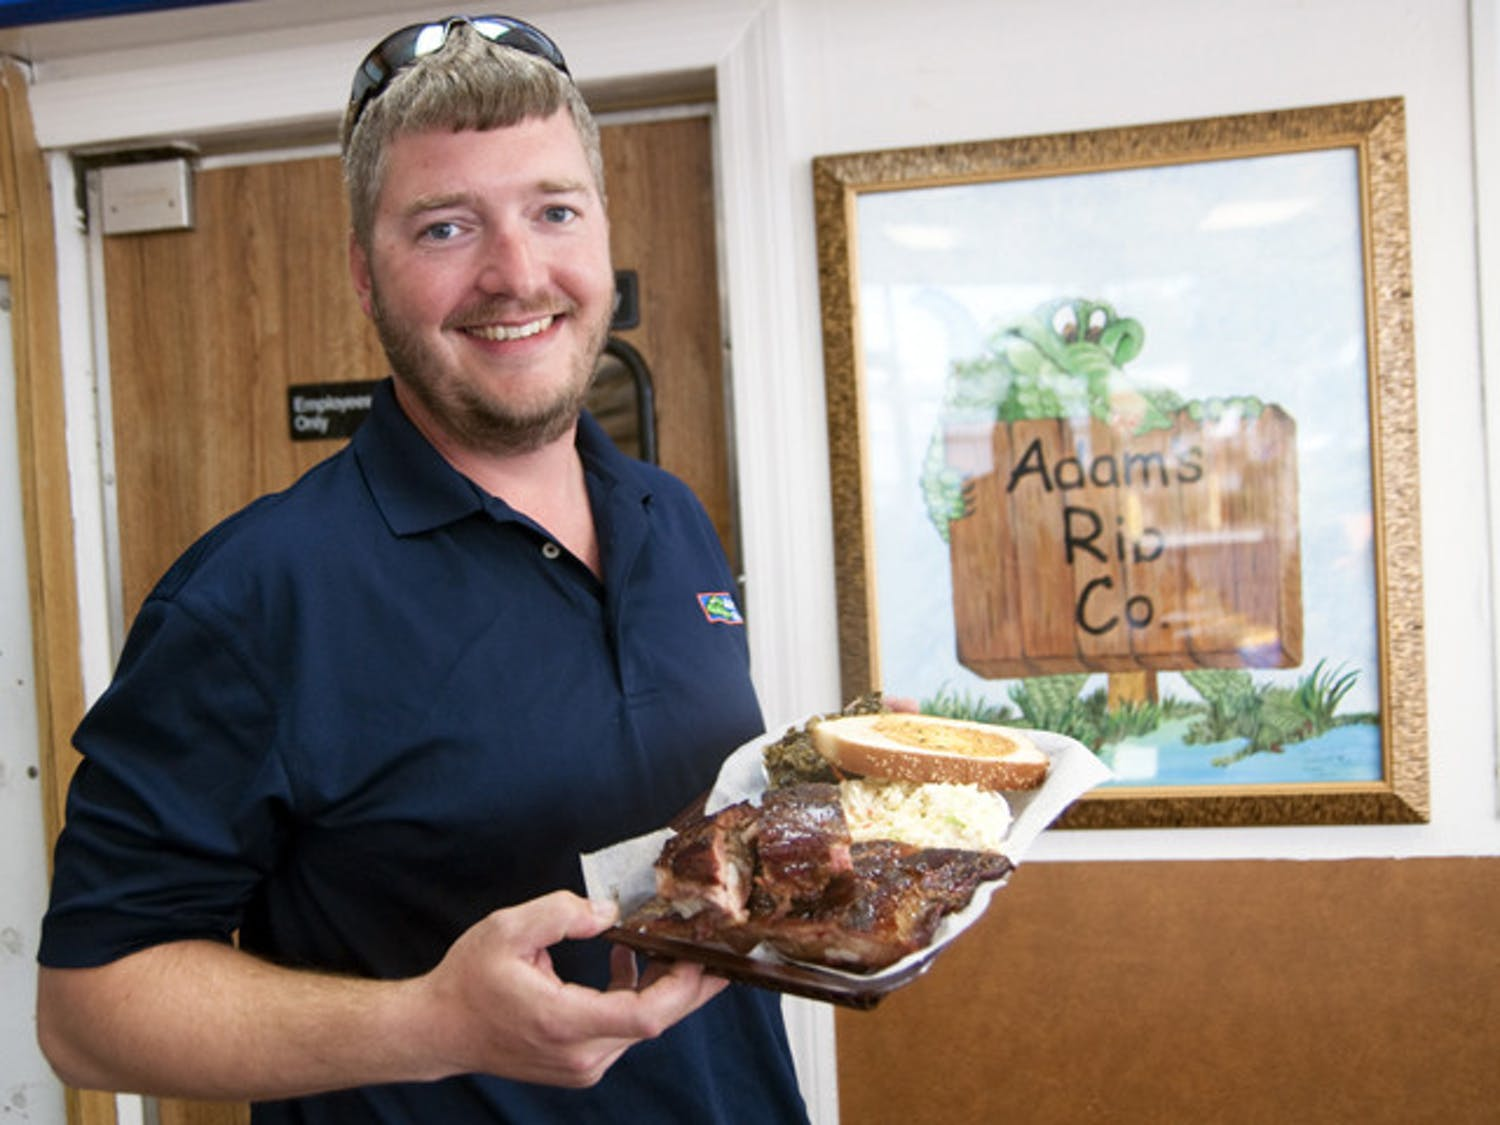 Gainesville native, Adam Brewer, shows off his pride and joy: perfect BBQ ribs.